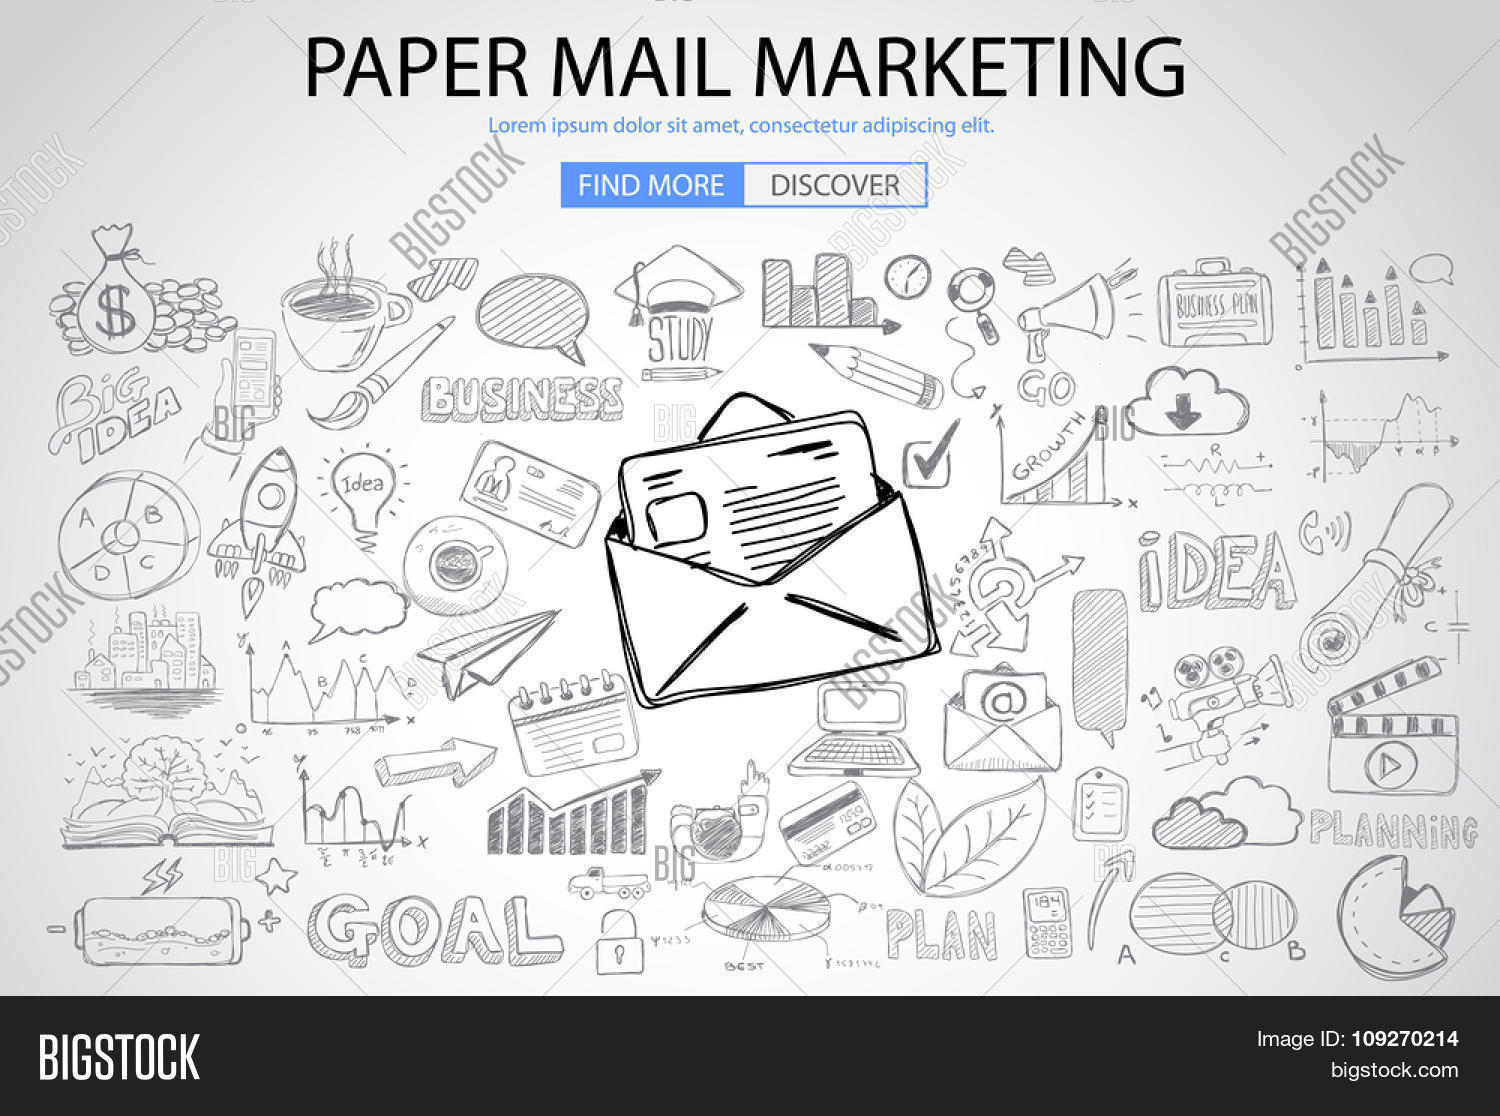 Paper Email Marketing With Doodle Design Style Sending Visual Emails Promotions Creative Designs